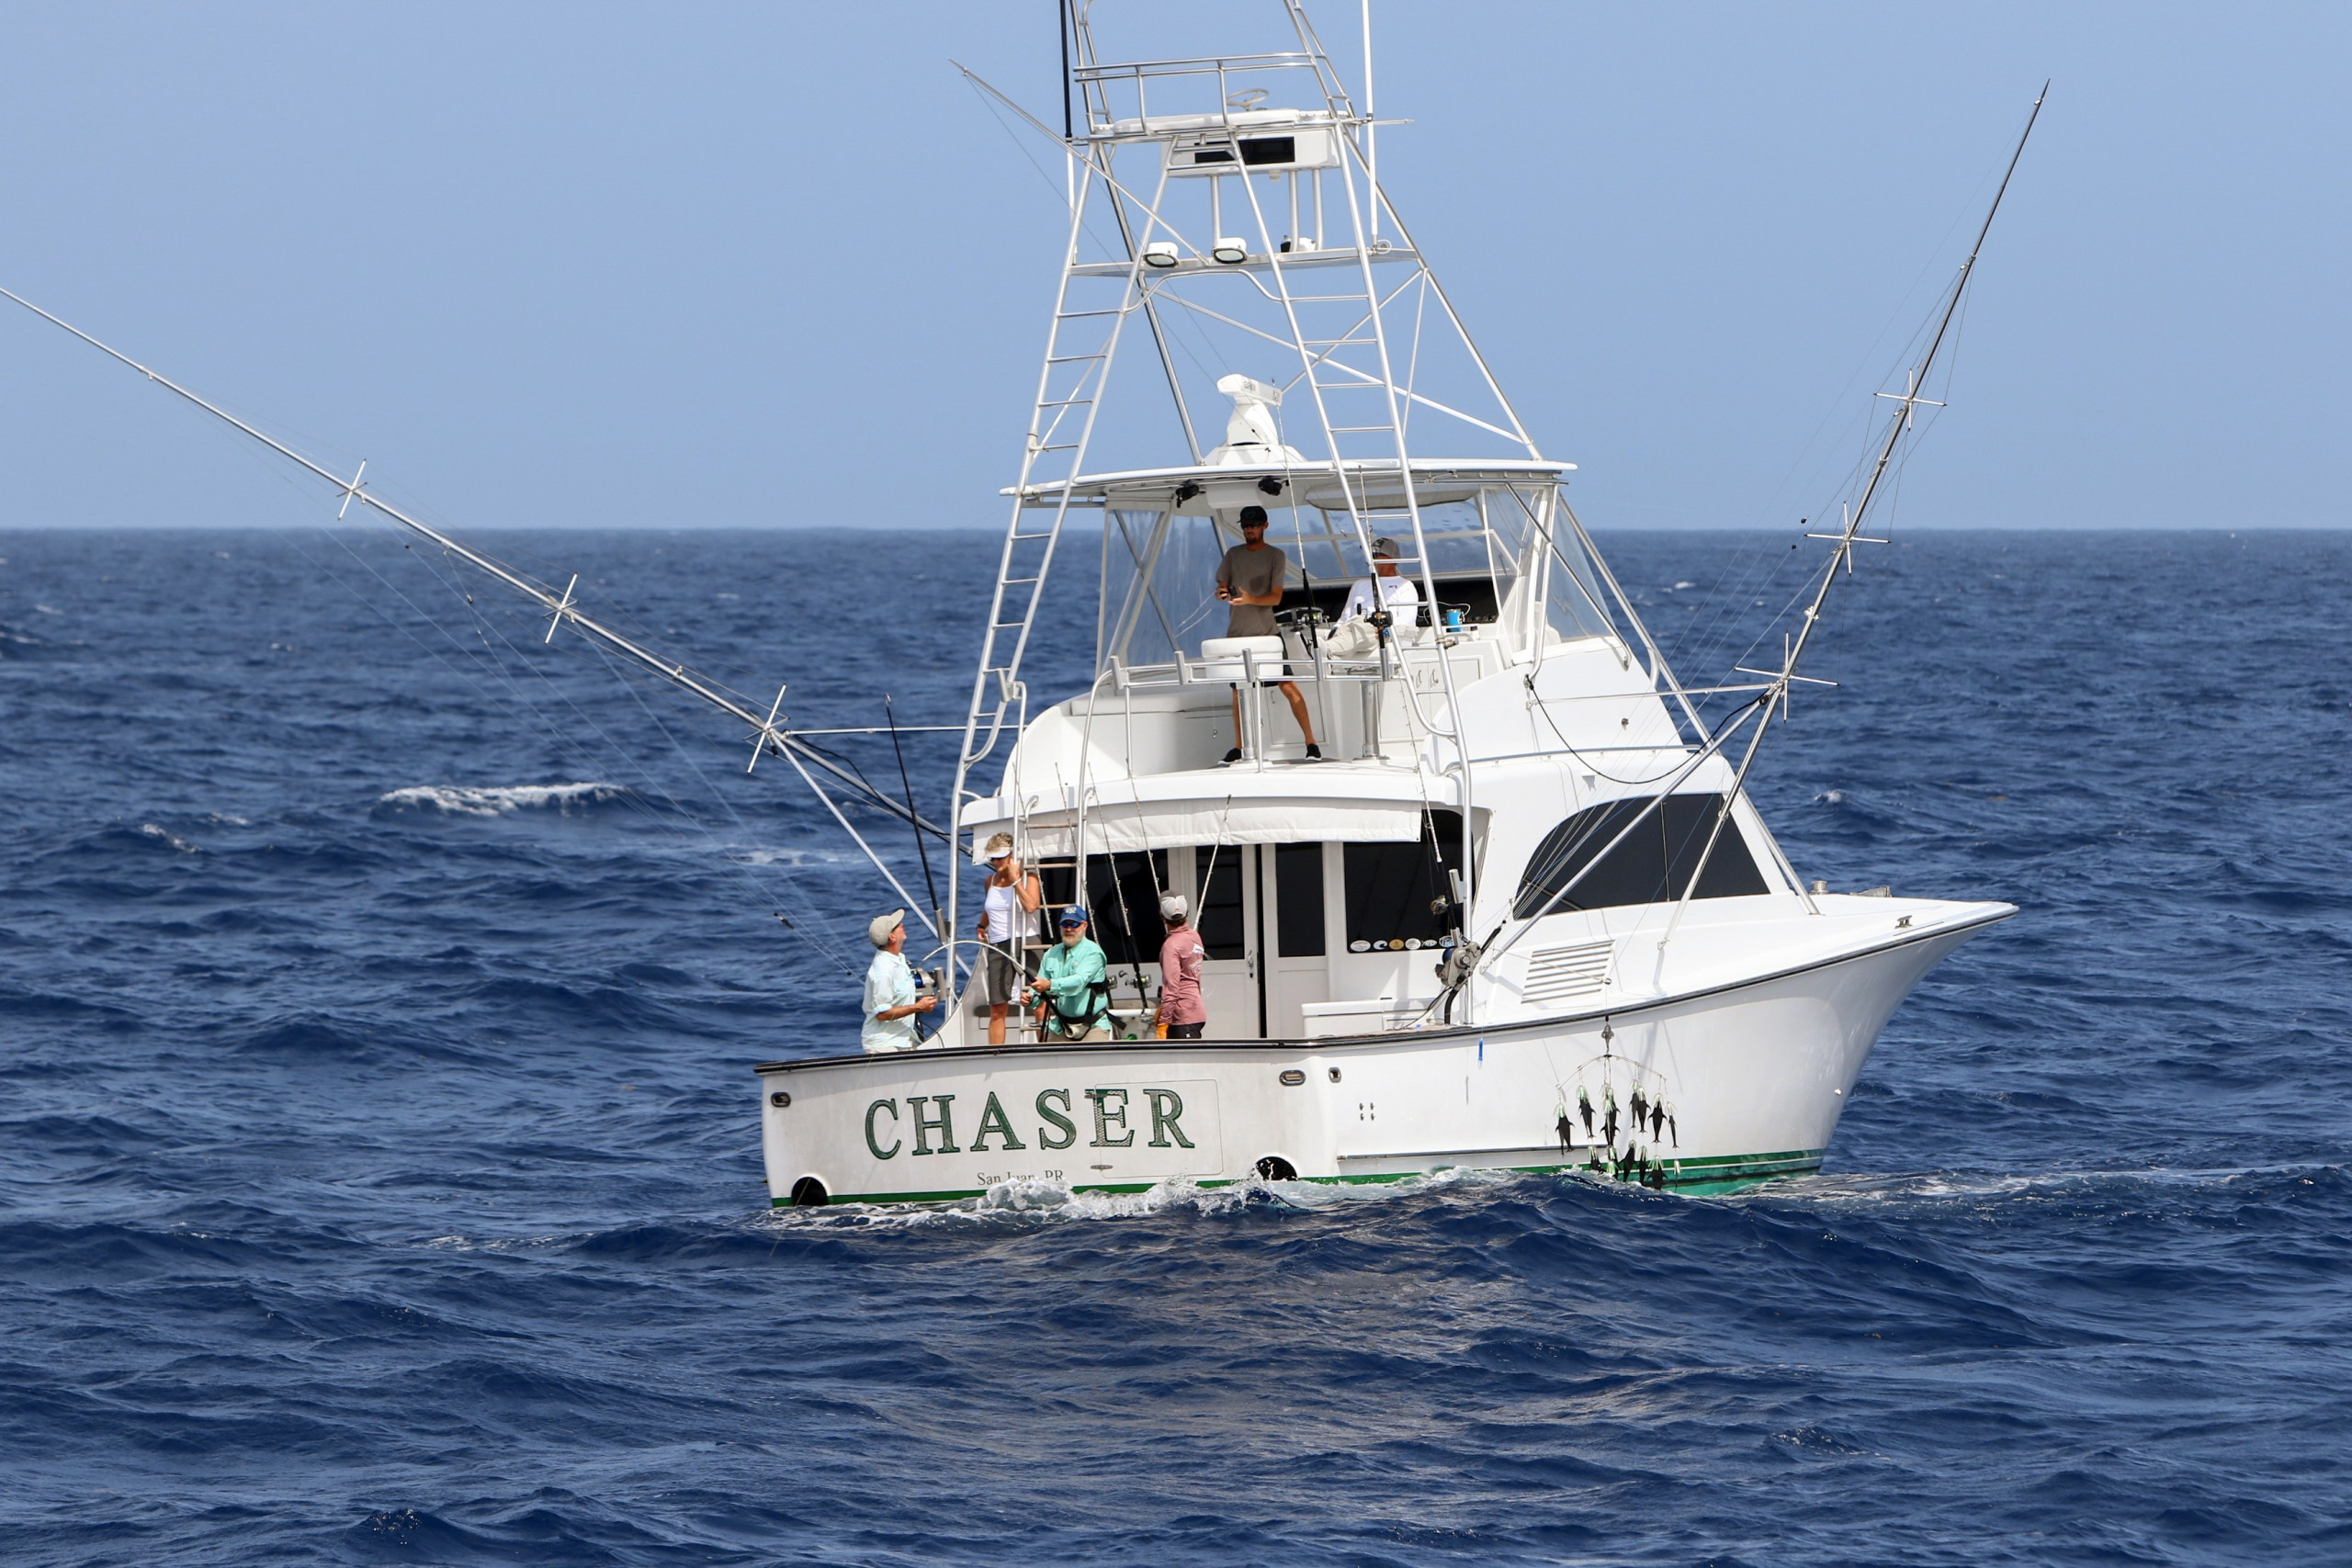 the chaser team out on the water in the dominican republic